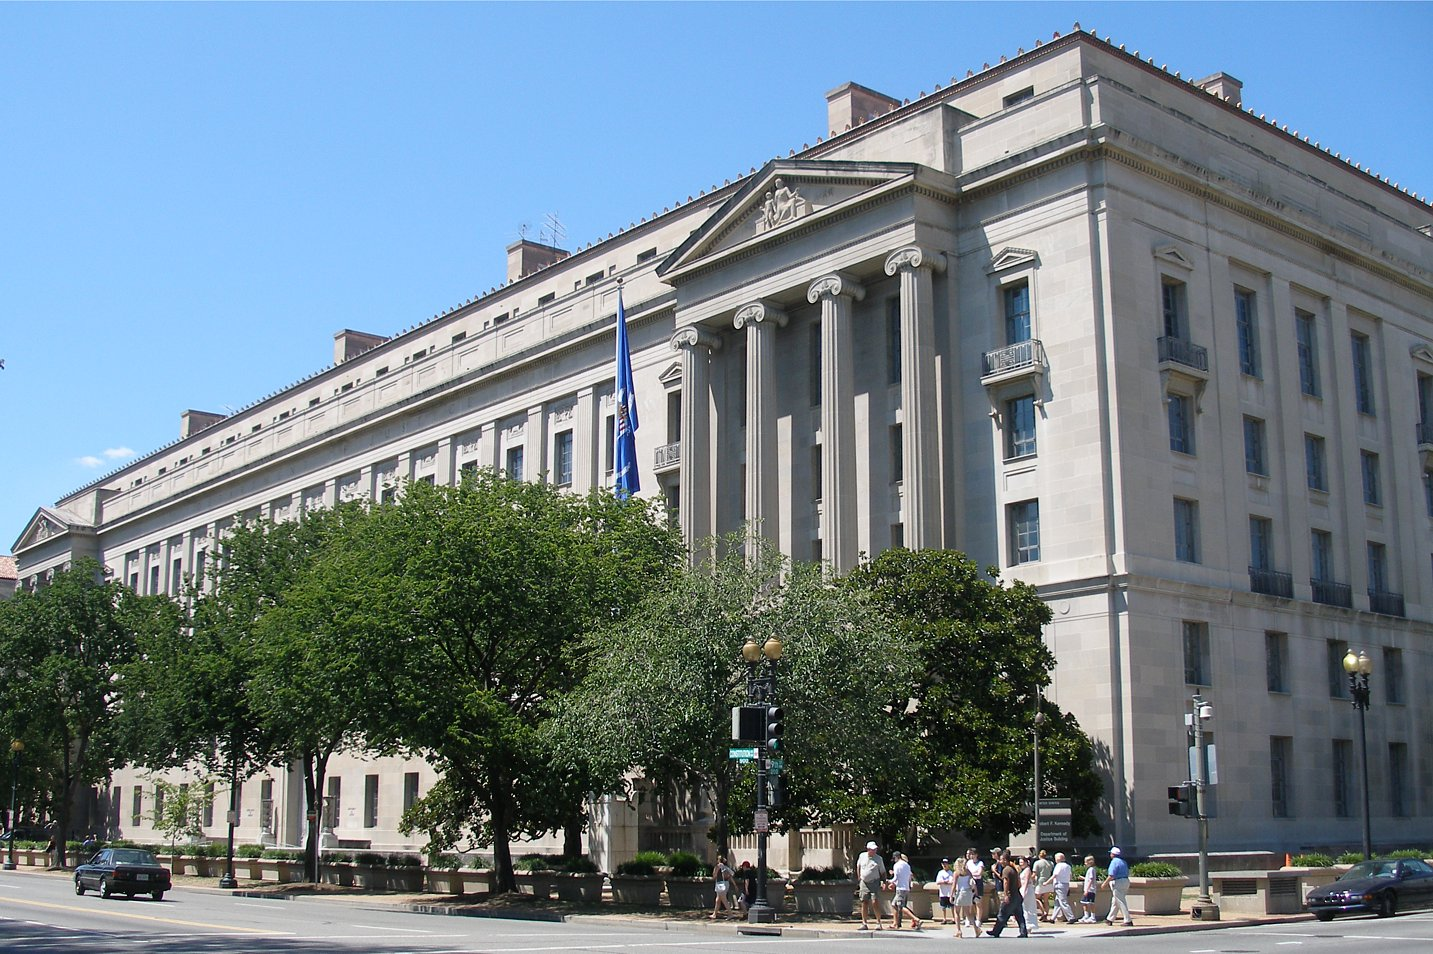 U.S. Department Of Justice Headquarters, August 12, 2006